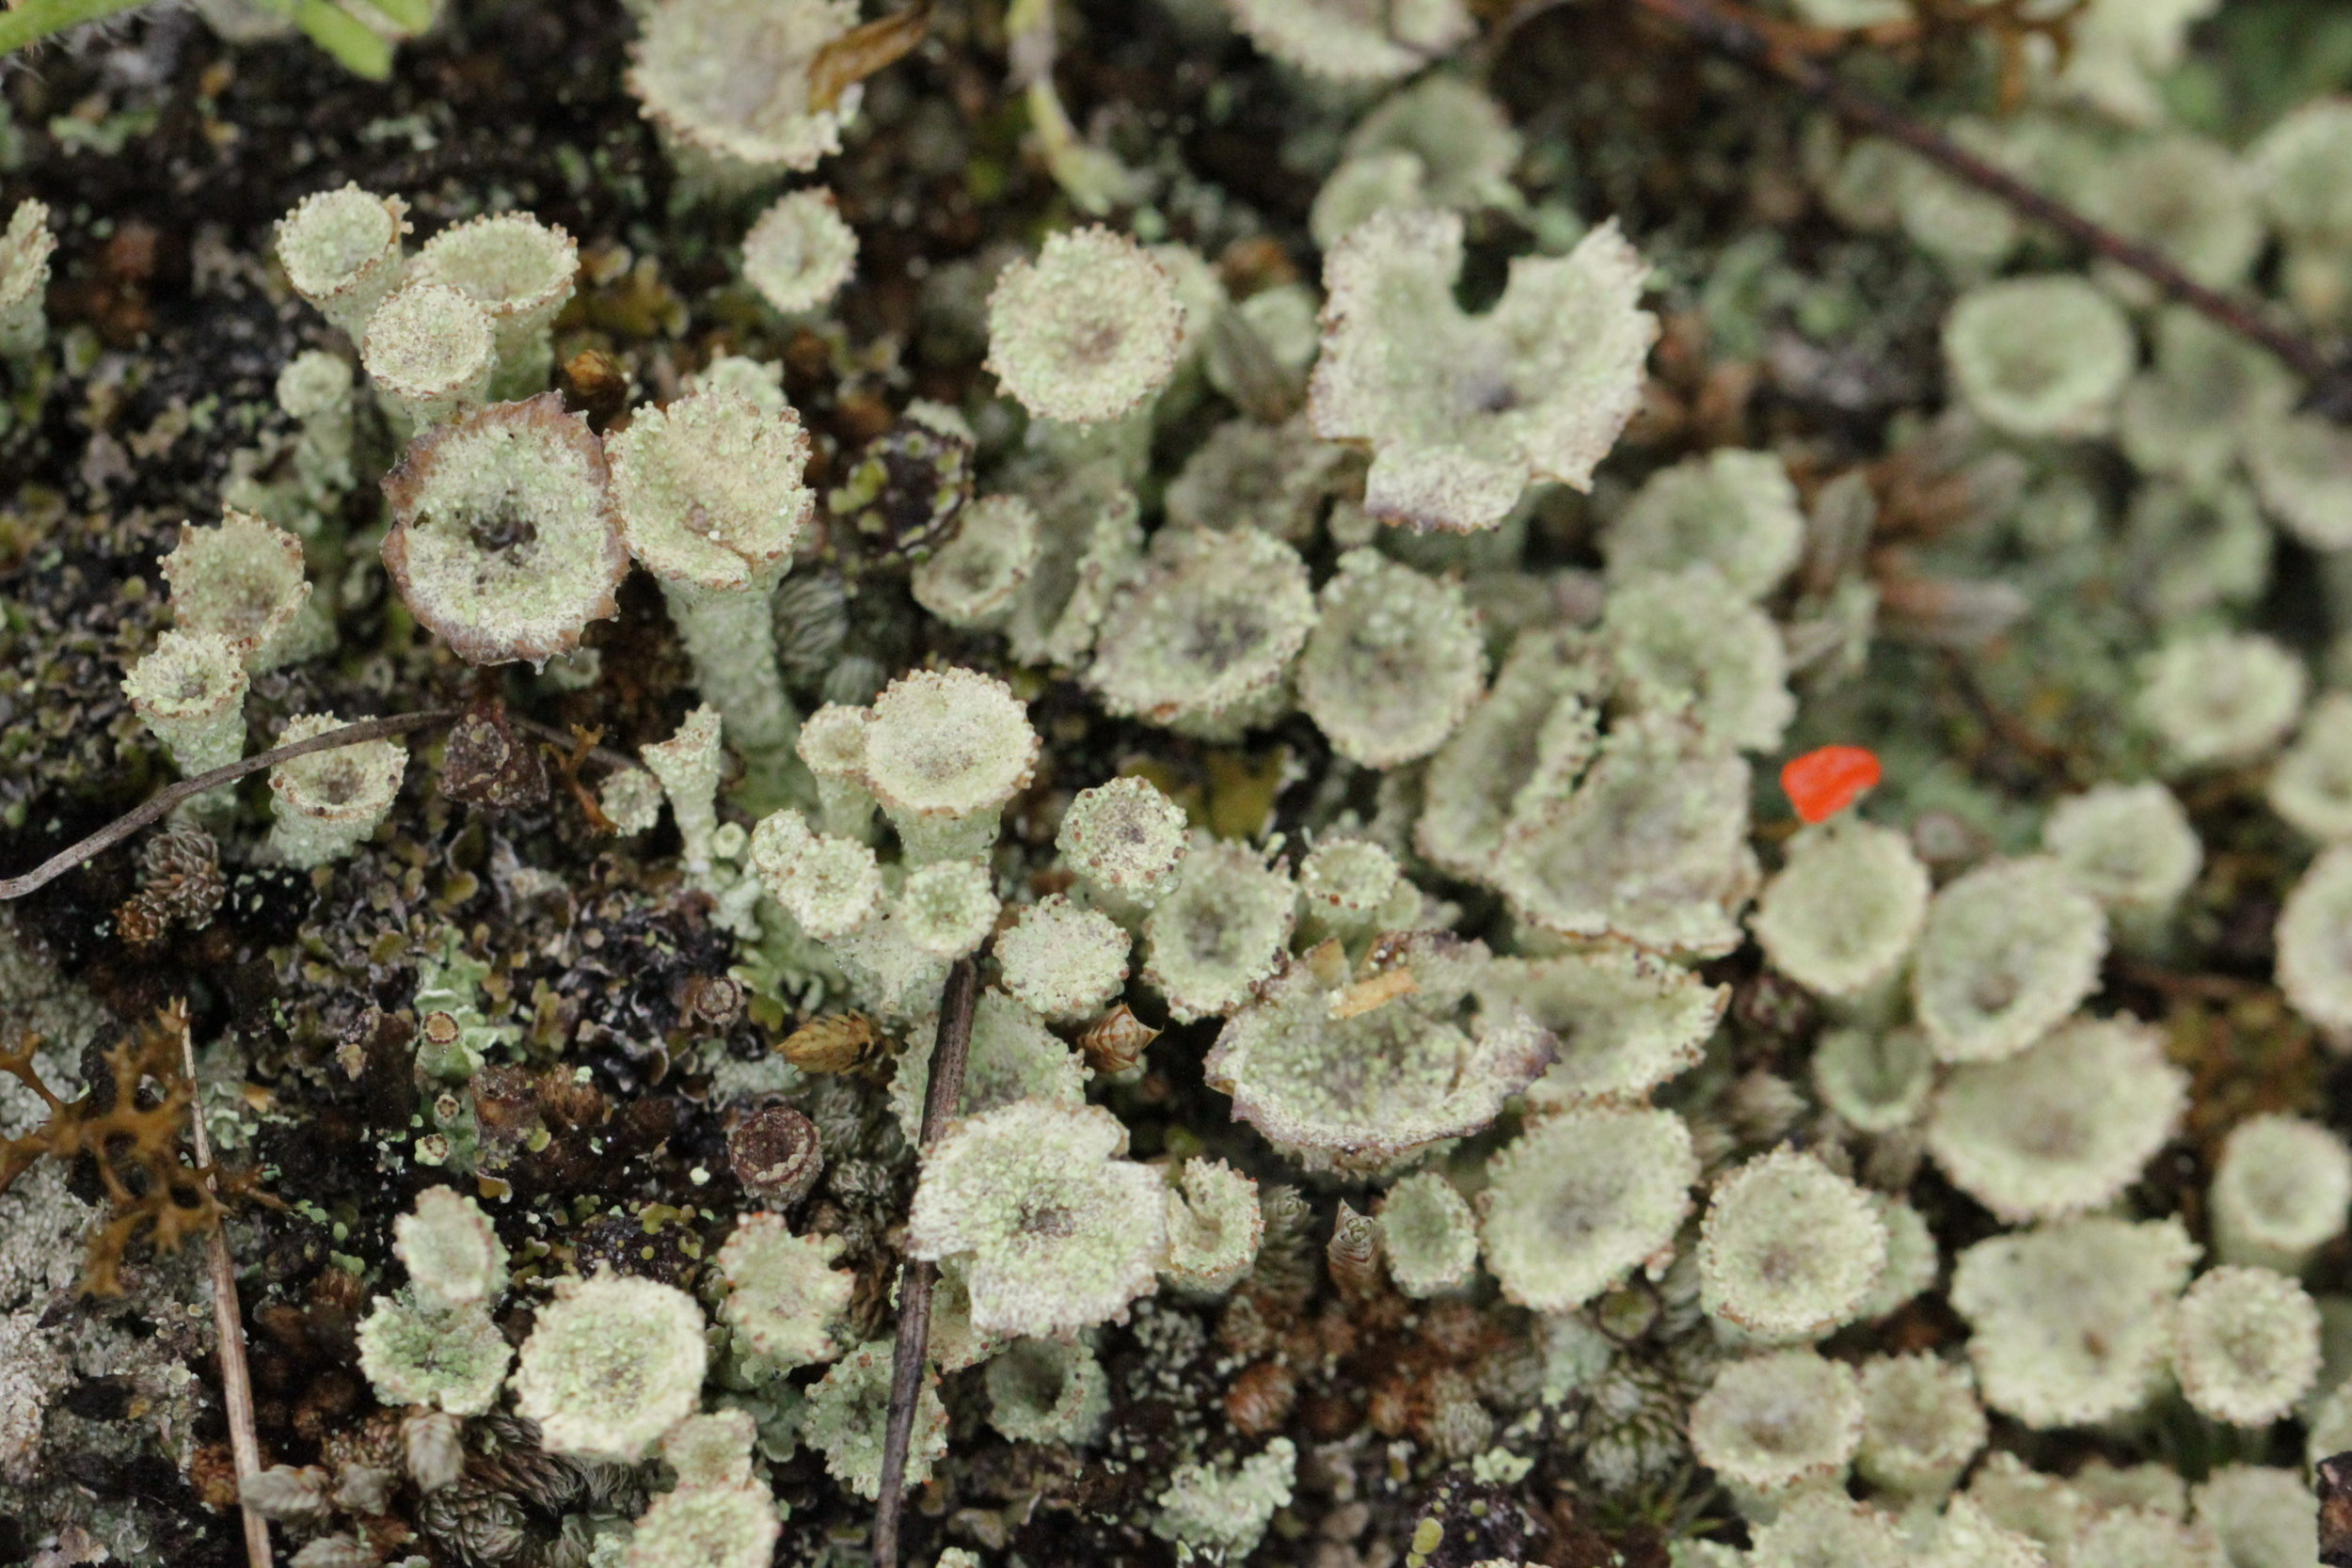 Pixie cup lichen ( Cladonia asahinae ) and one lone Red soldier lichen ( Cladonia cristatella ). I often notice these two growing together.